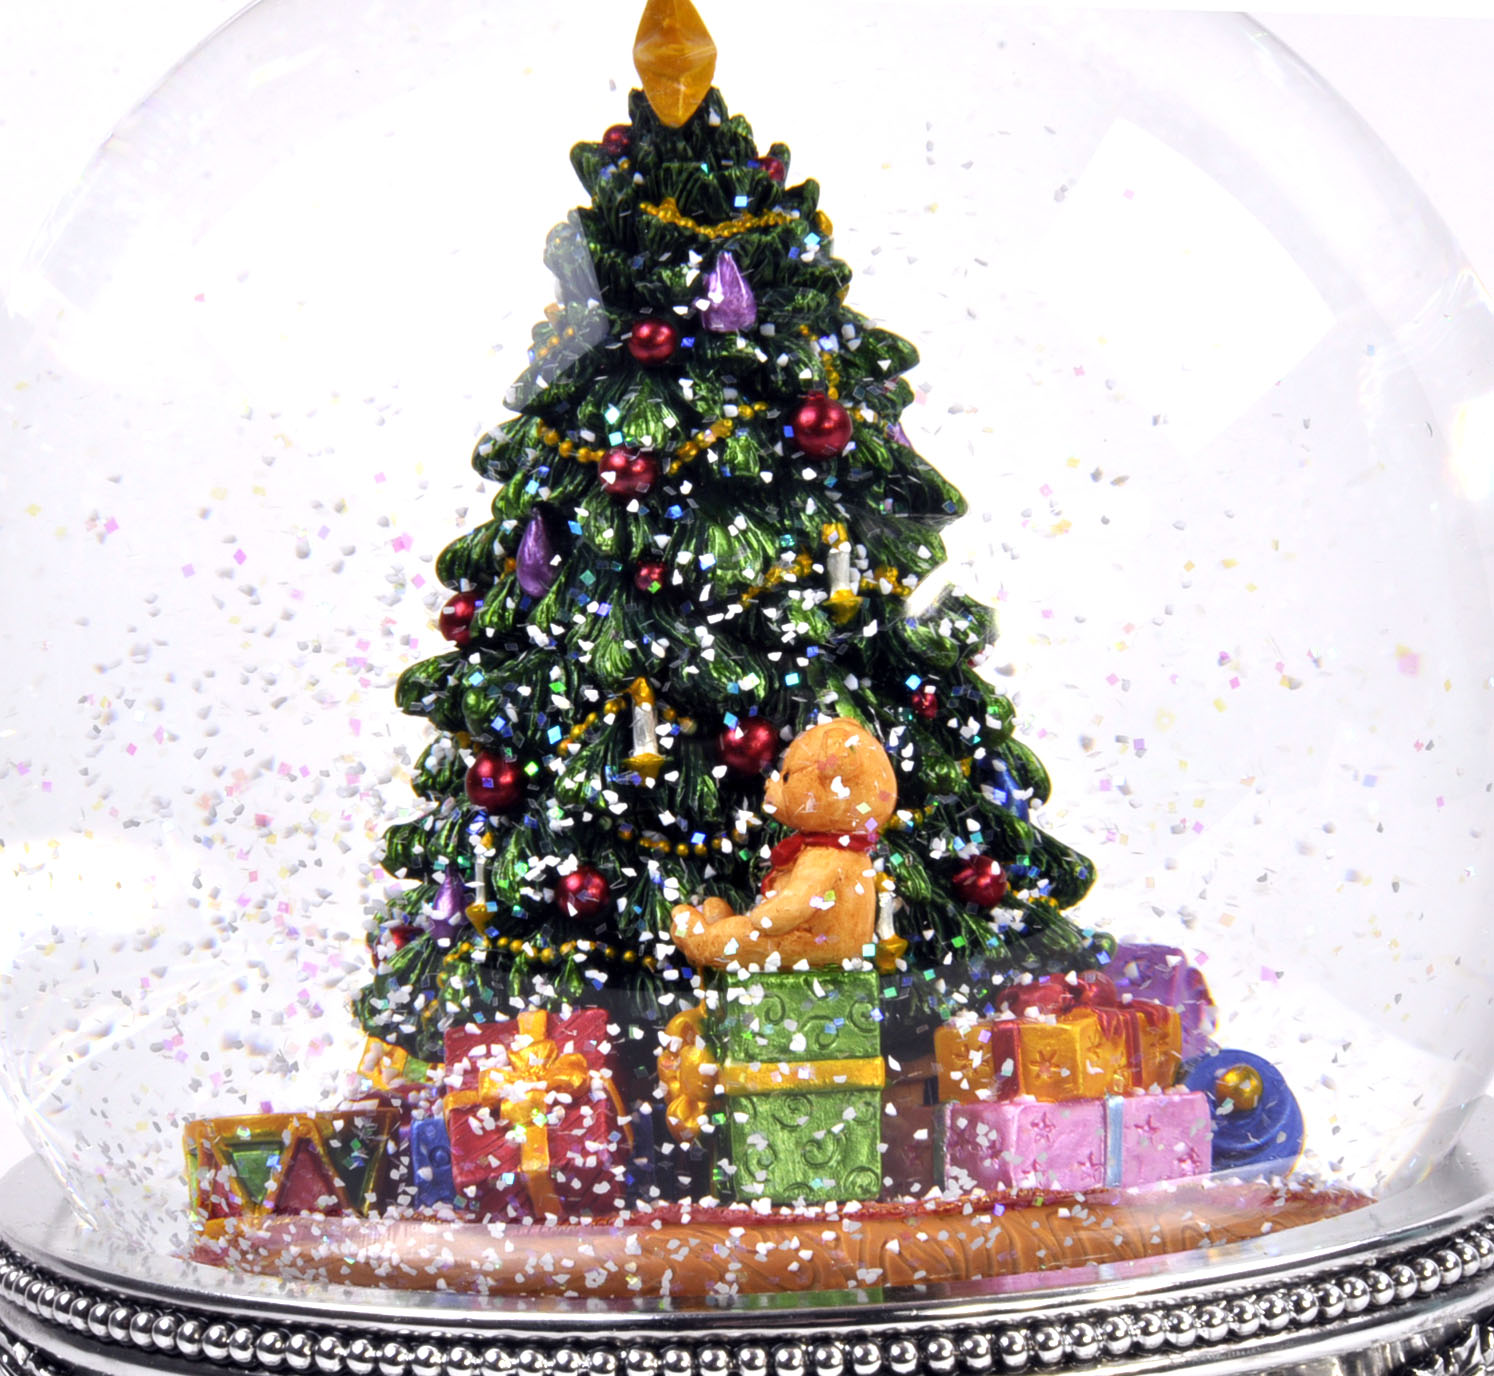 Details About Musicbox Kingdom 56055 Christmas Tree Snow Globe Music Box Plays The Melody Ta